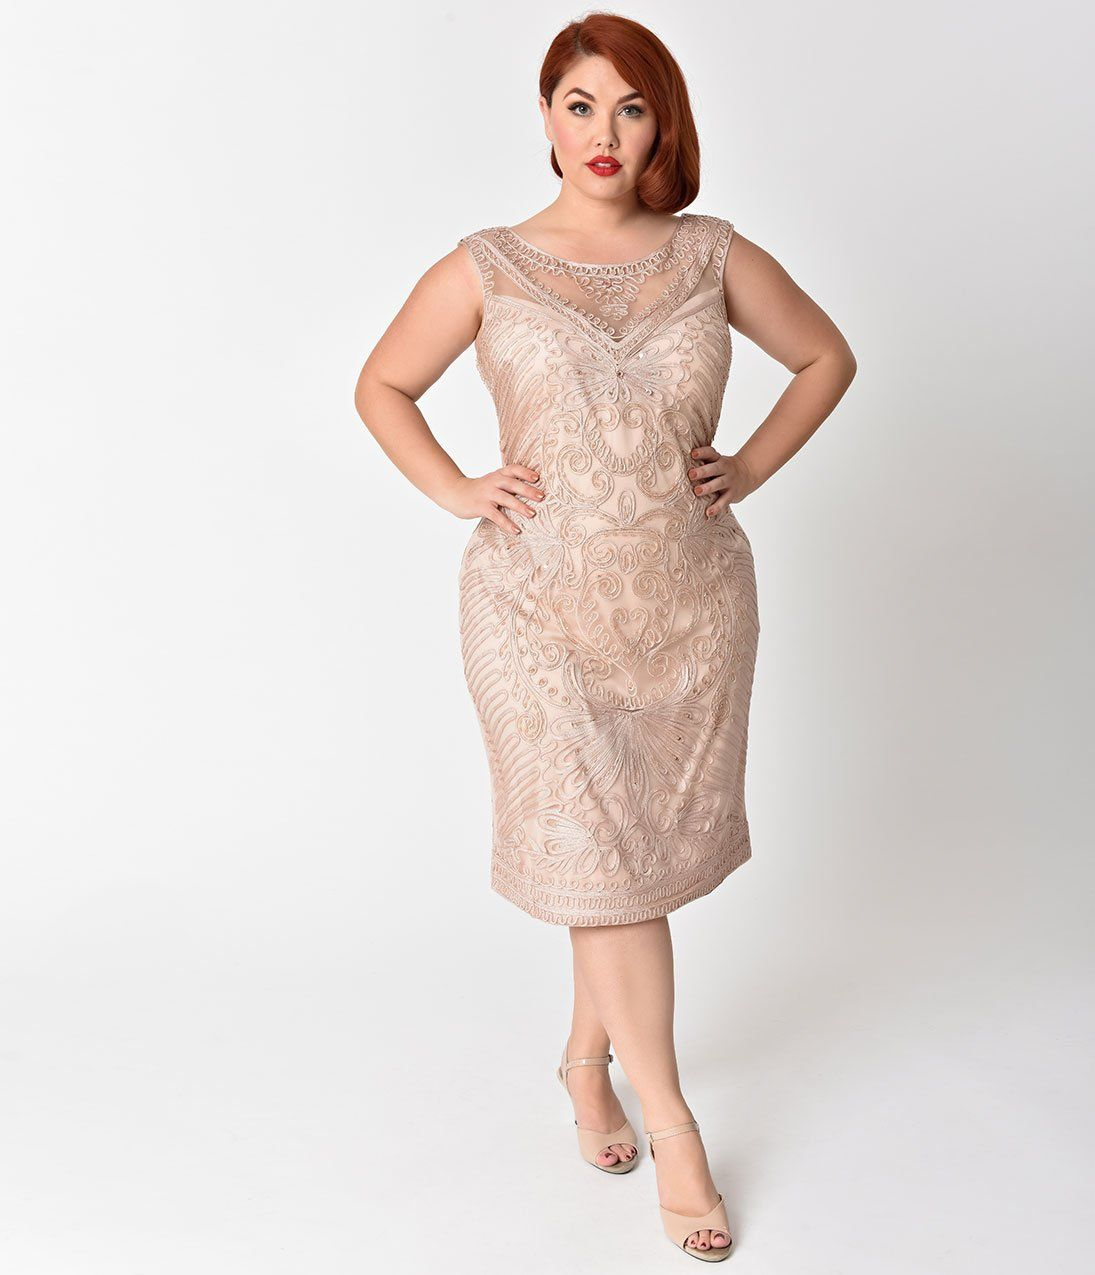 Champagne Color Plus Size Dress